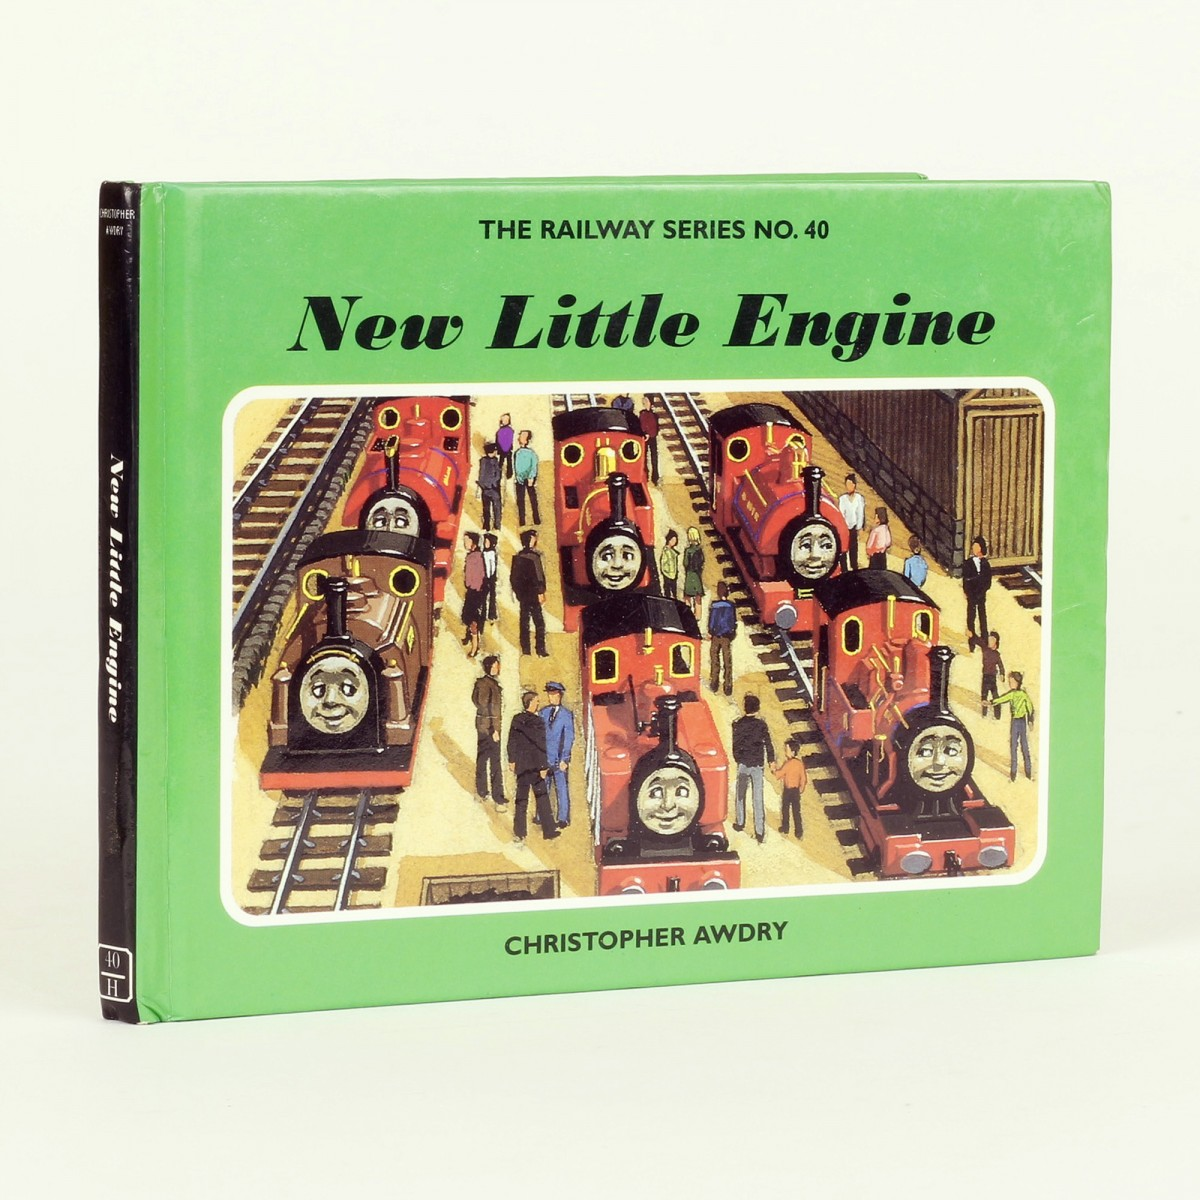 New Little Engine by AWDRY, Christopher - Jonkers Rare Books